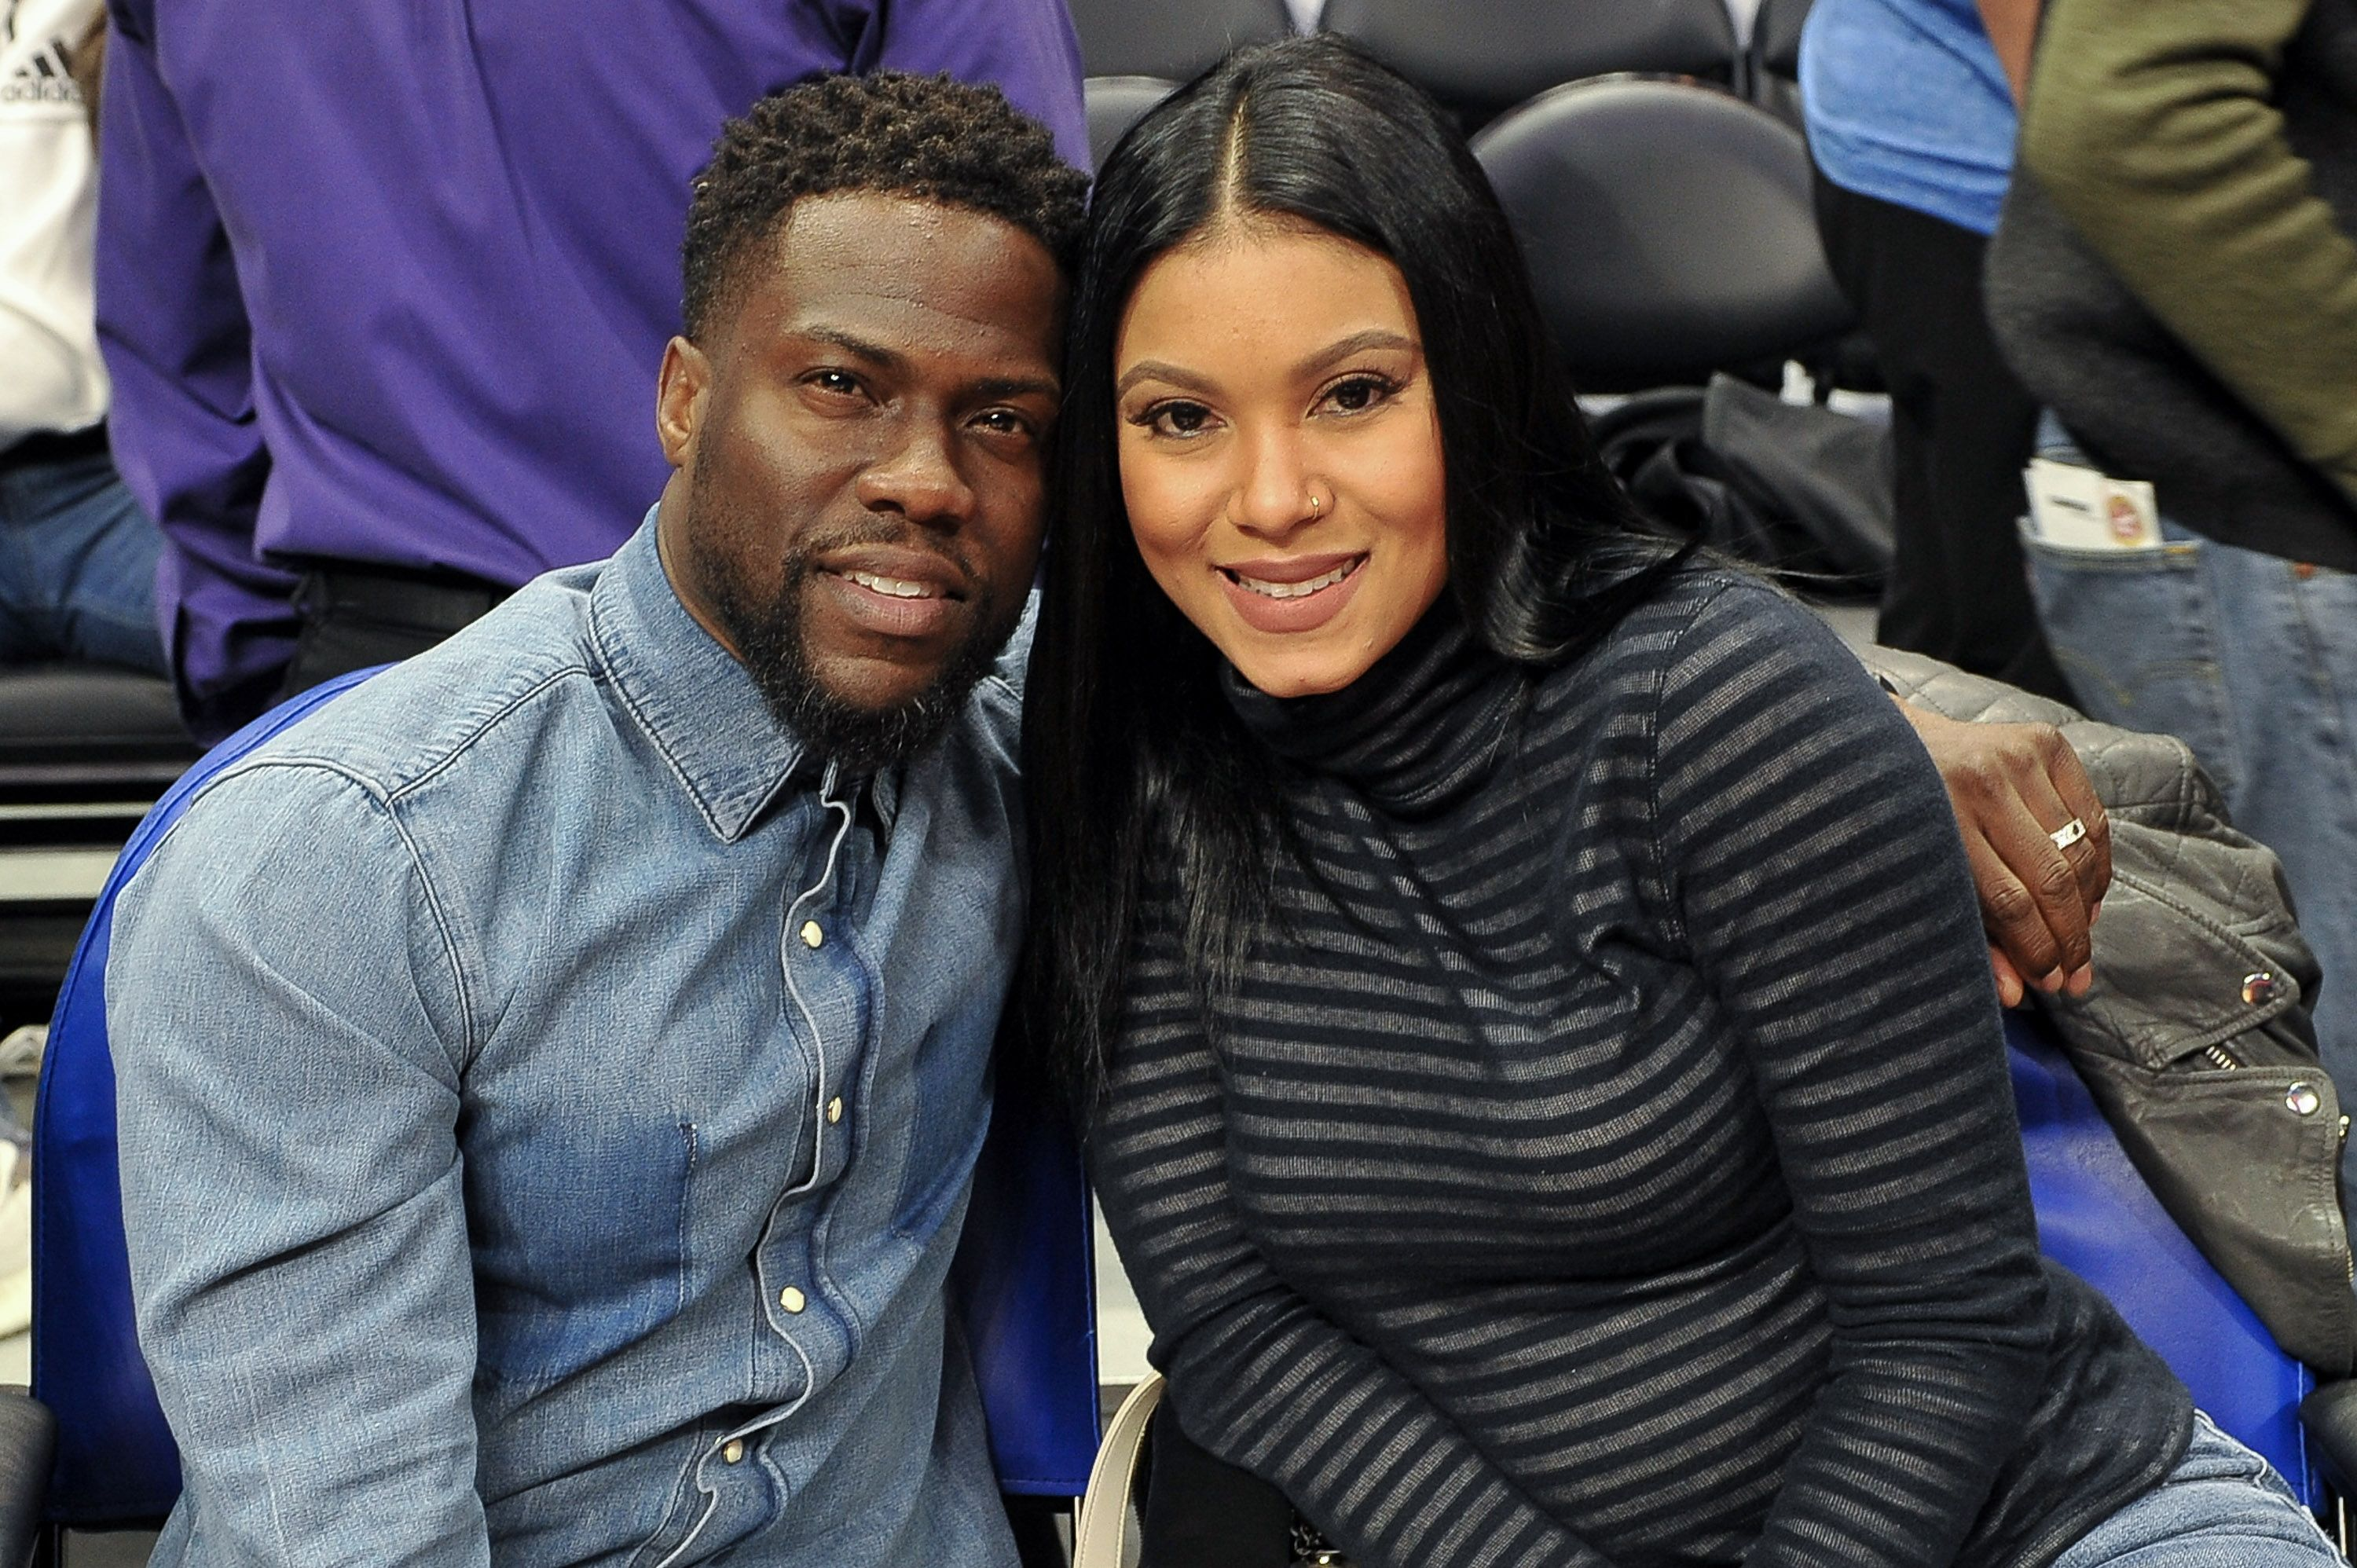 Kevin Hart and Eniko Parrish at a basketball game at Staples Center in Los Angeles on January 22, 2018. | Photo: Getty Images